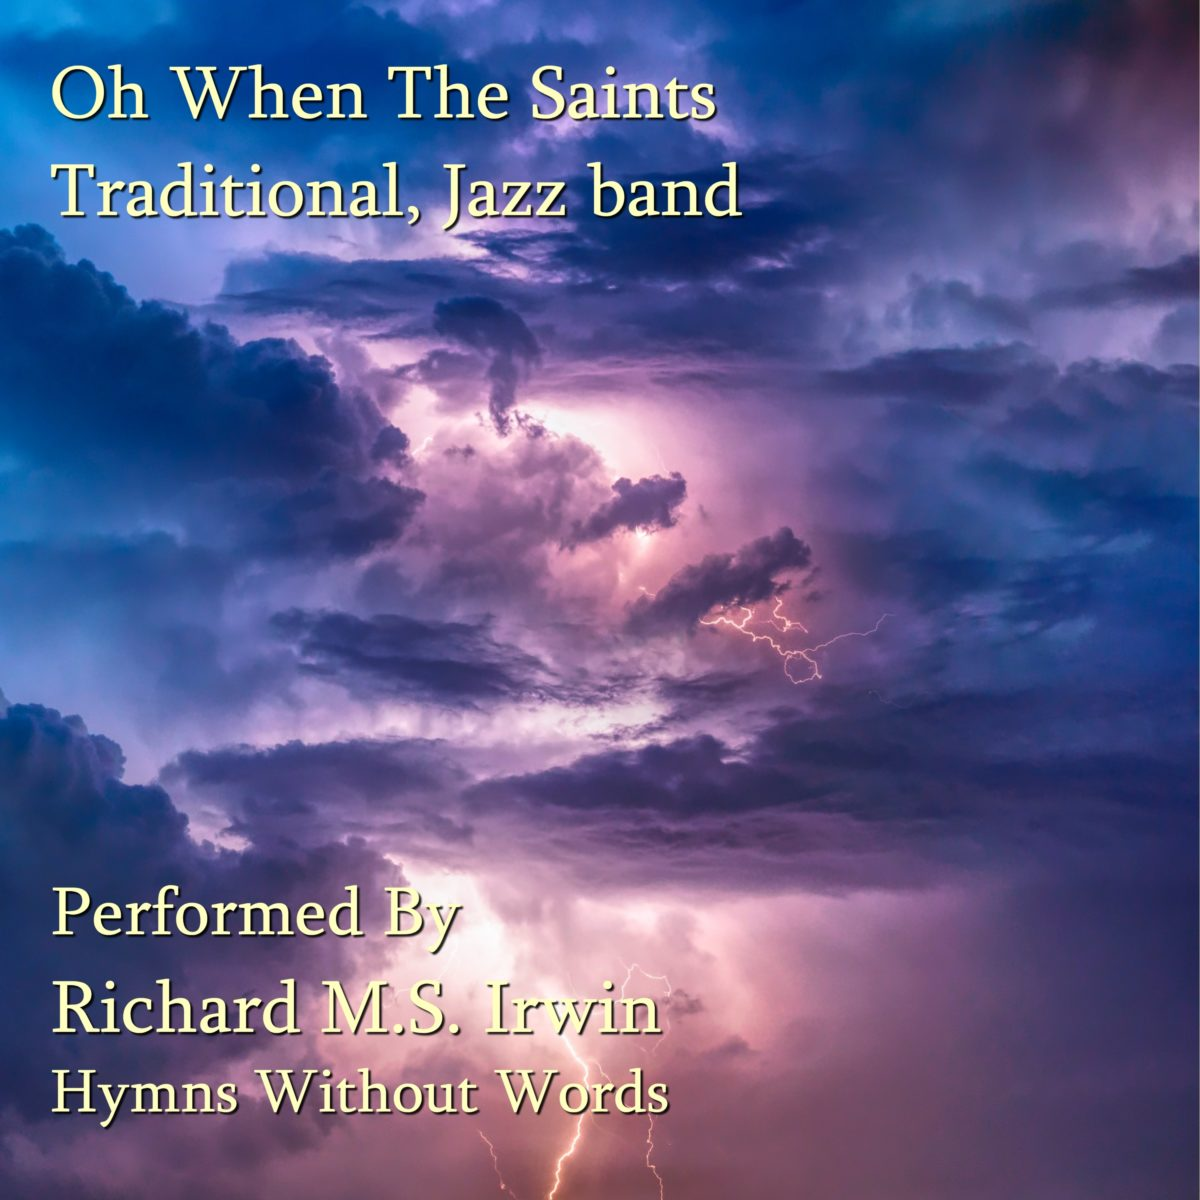 Oh When The Saints Go Marching In (The Saints, Jazz Band, 5 Verses)